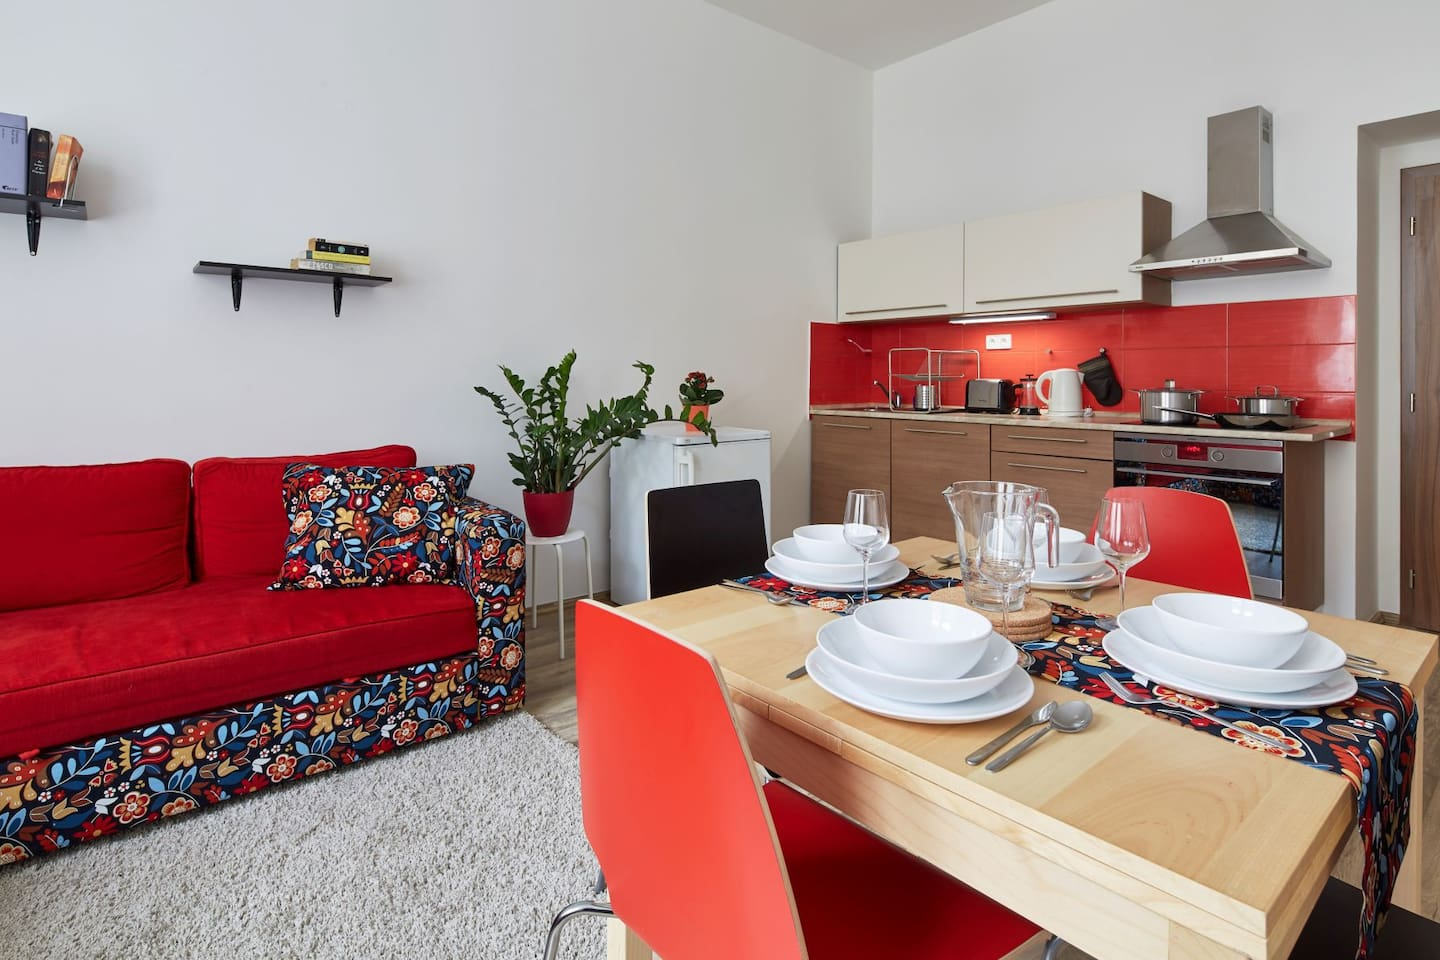 There is a fully equipped kitchen with everything you might need to prepare any meal, including a toaster and oven.